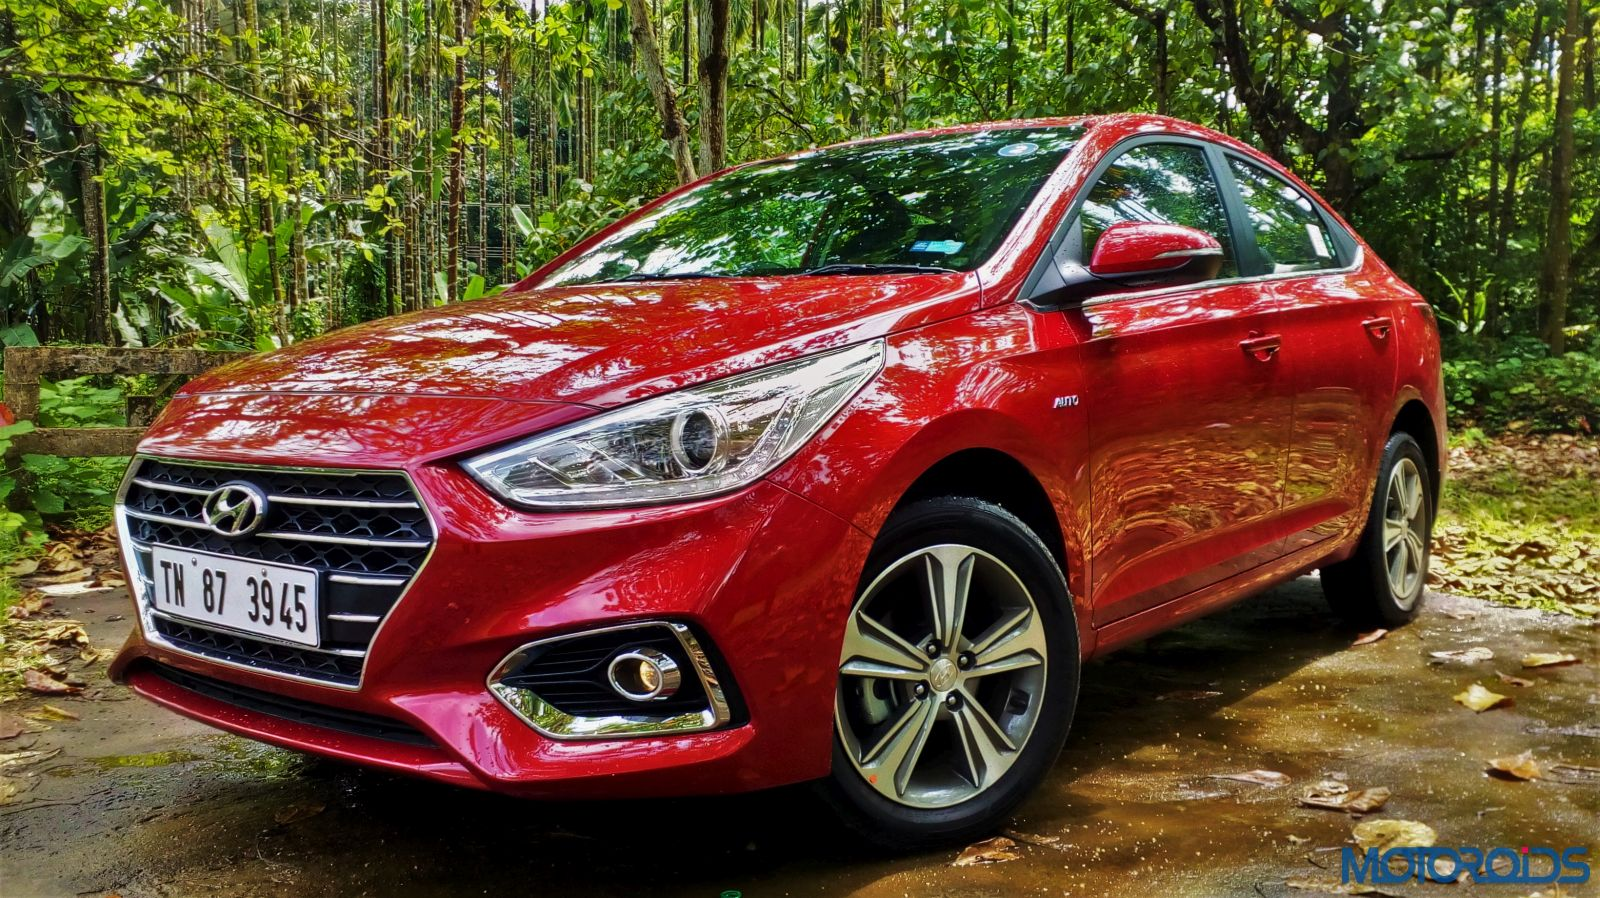 August 28, 2017-New-2017-Next-gen-Hyundai-Verna-static-Red10.jpg